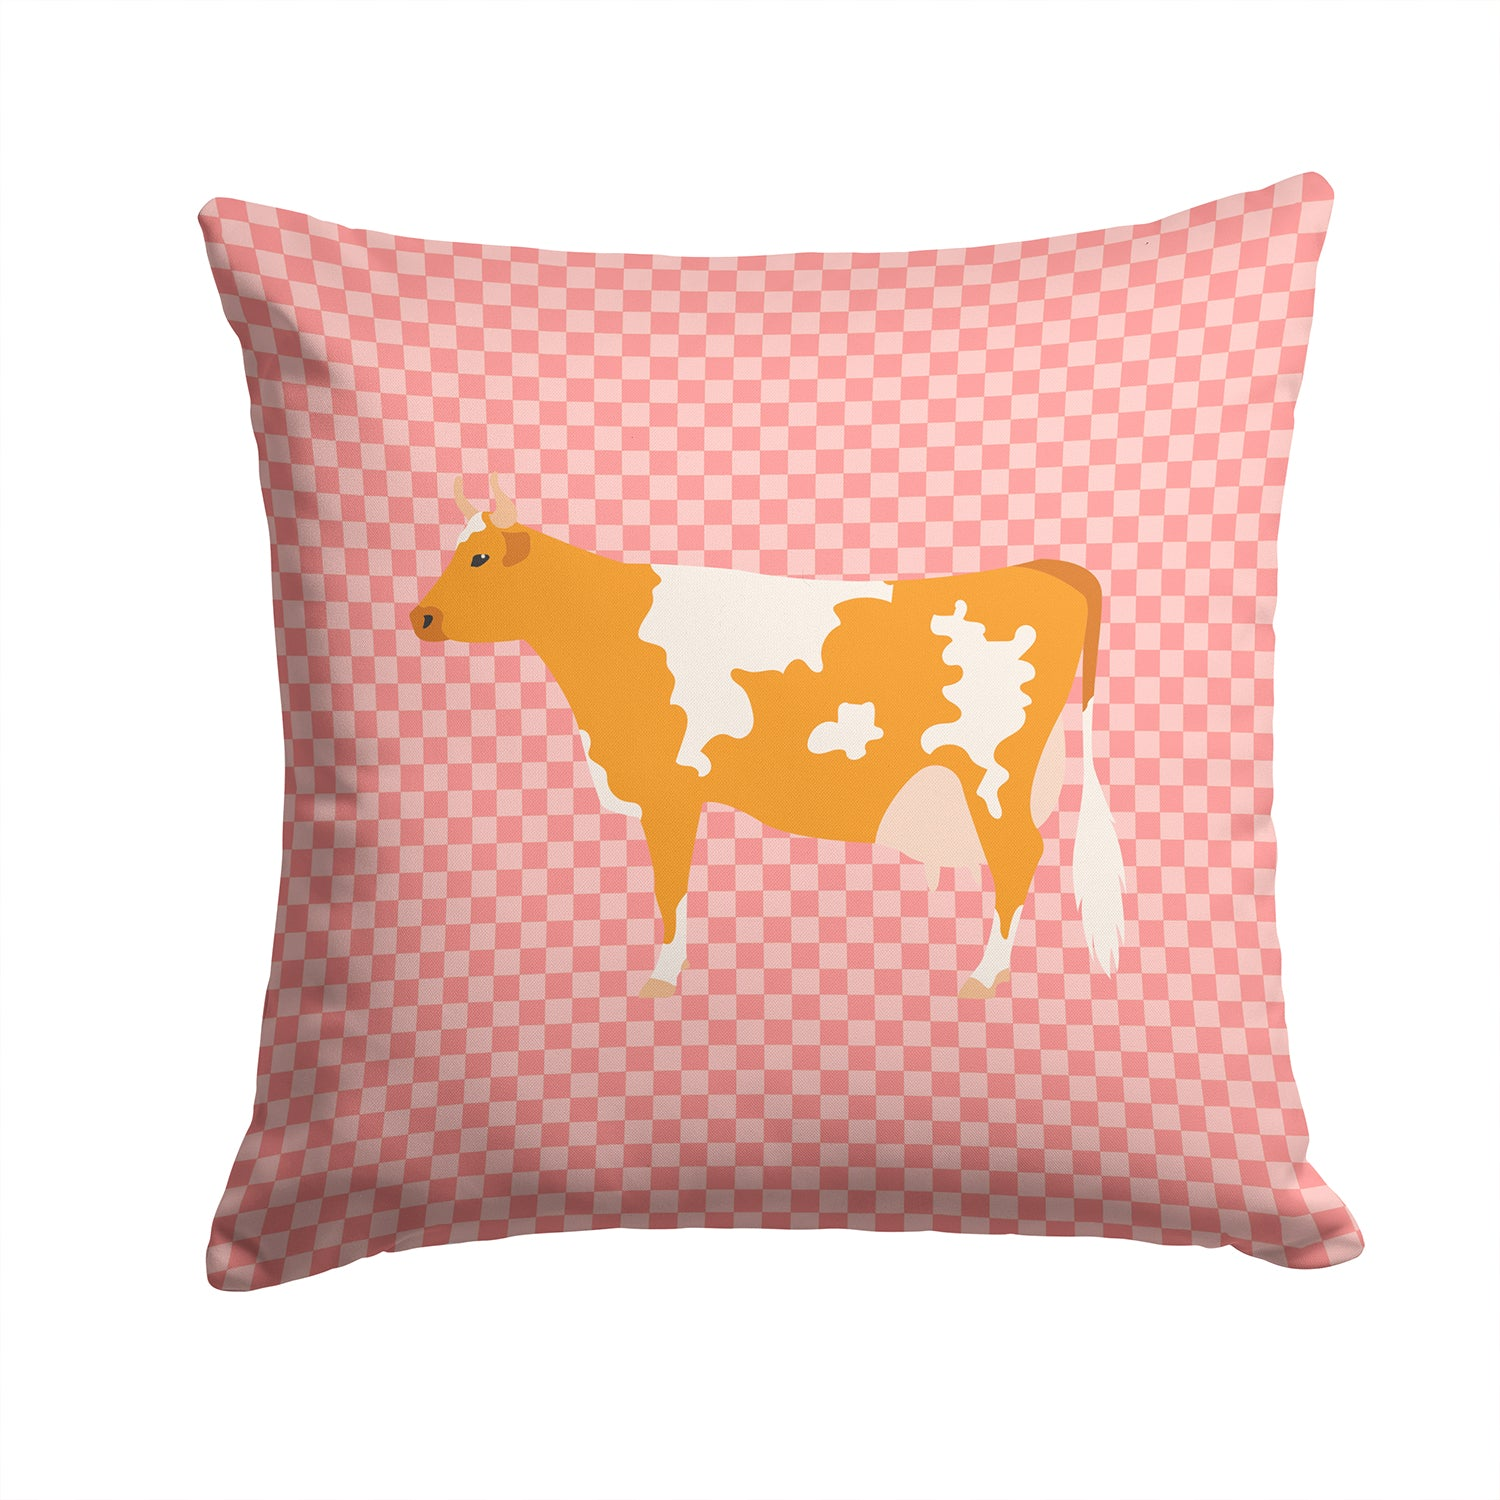 Guernsey Cow Pink Check Fabric Decorative Pillow BB7821PW1414 by Caroline's Treasures